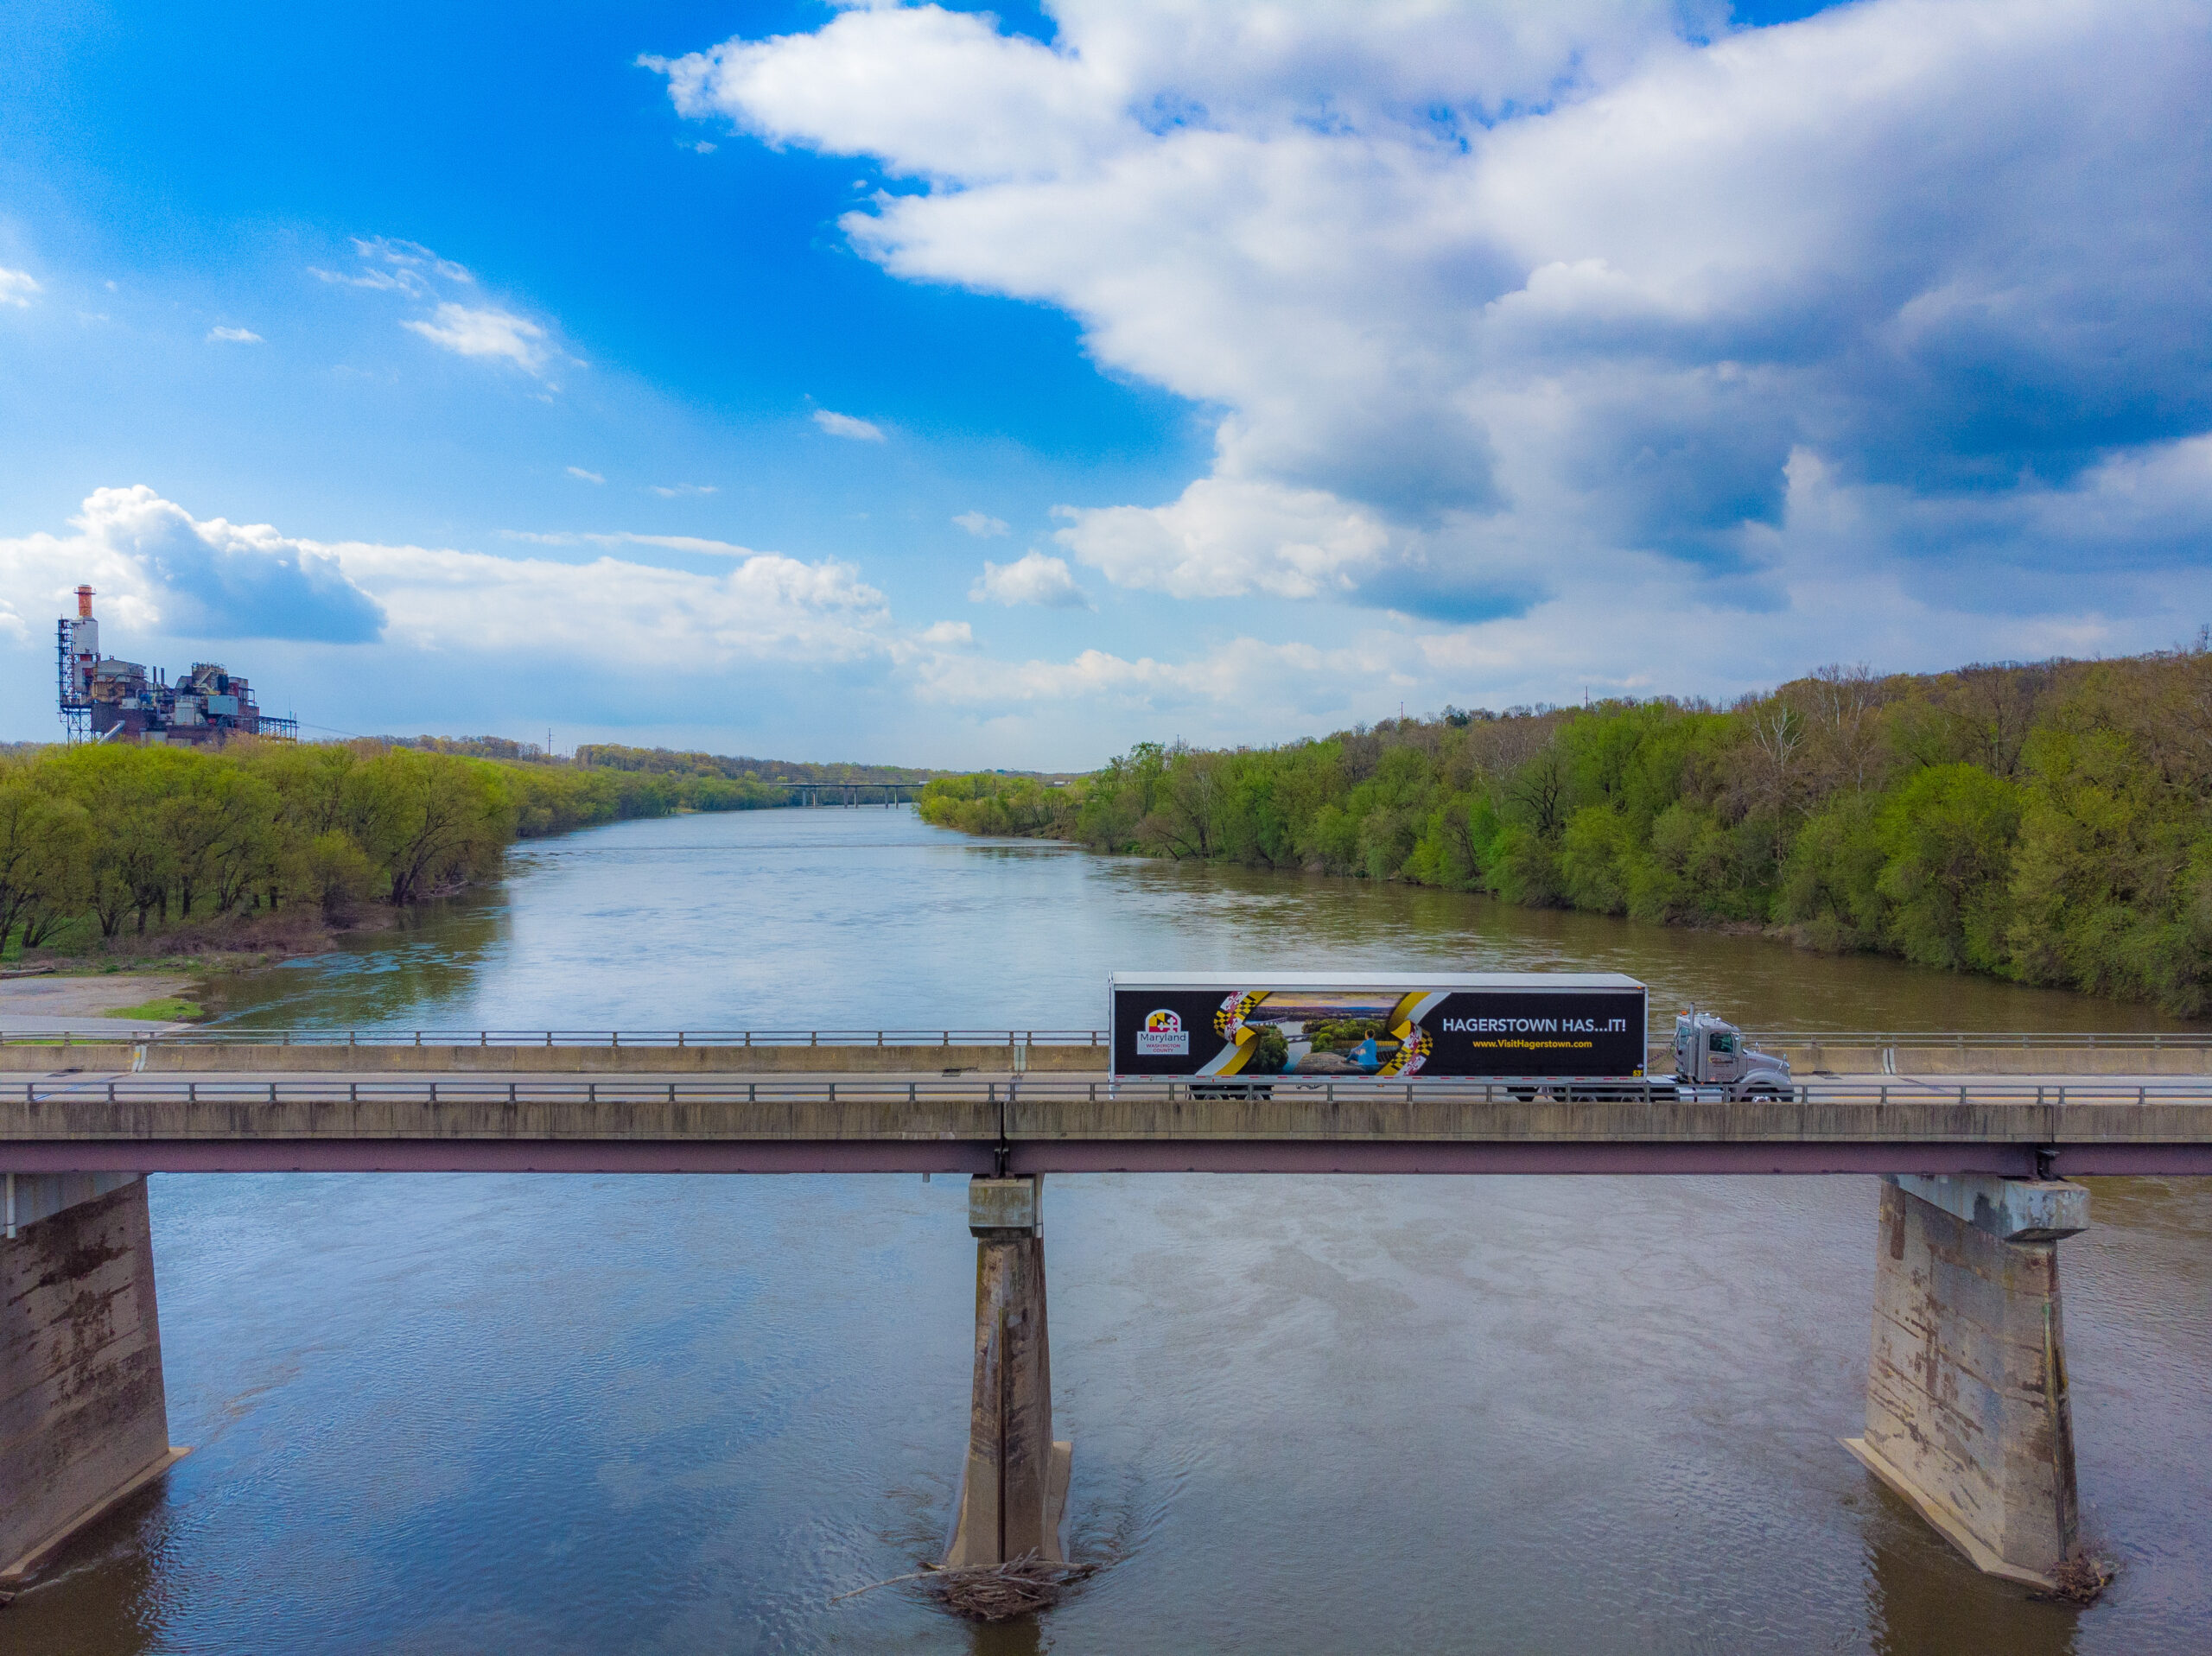 Visit Hagerstown truckside ad over bridge